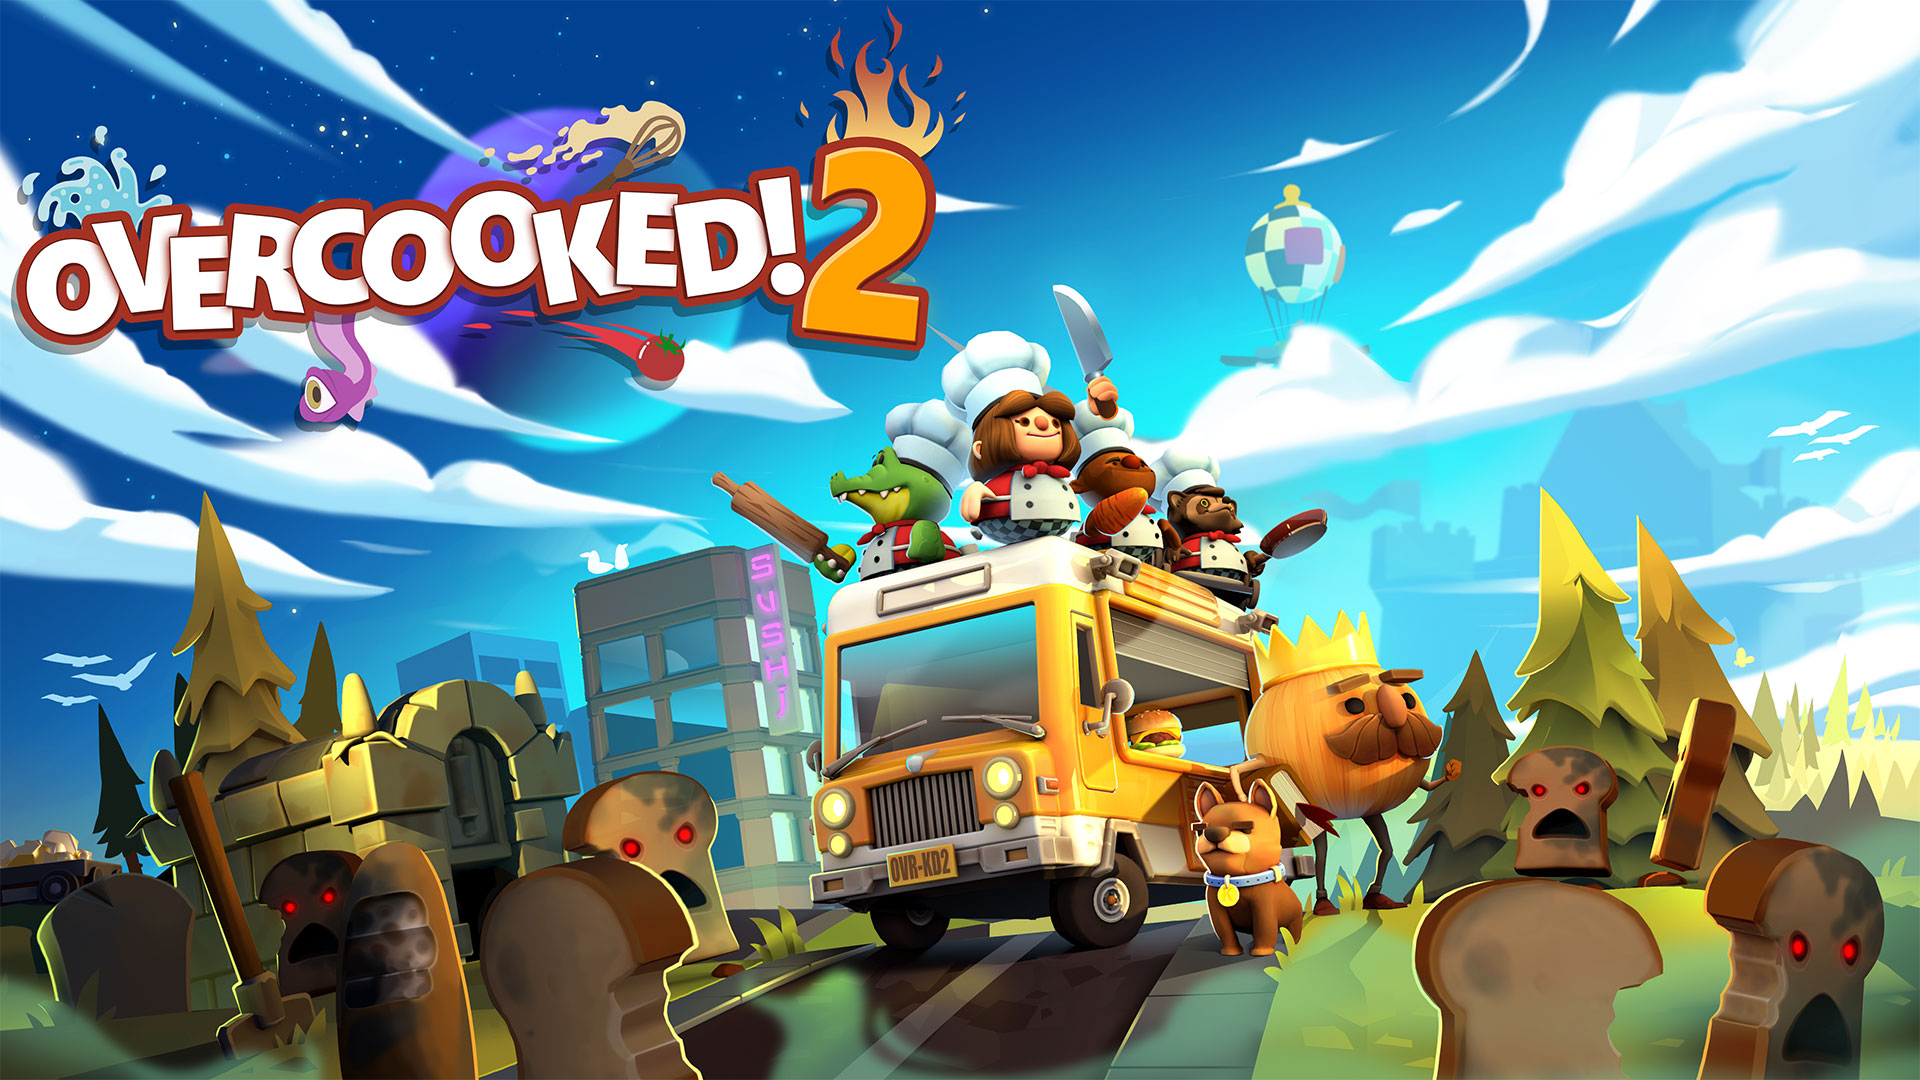 Is Overcooked 2 Worth Buying?